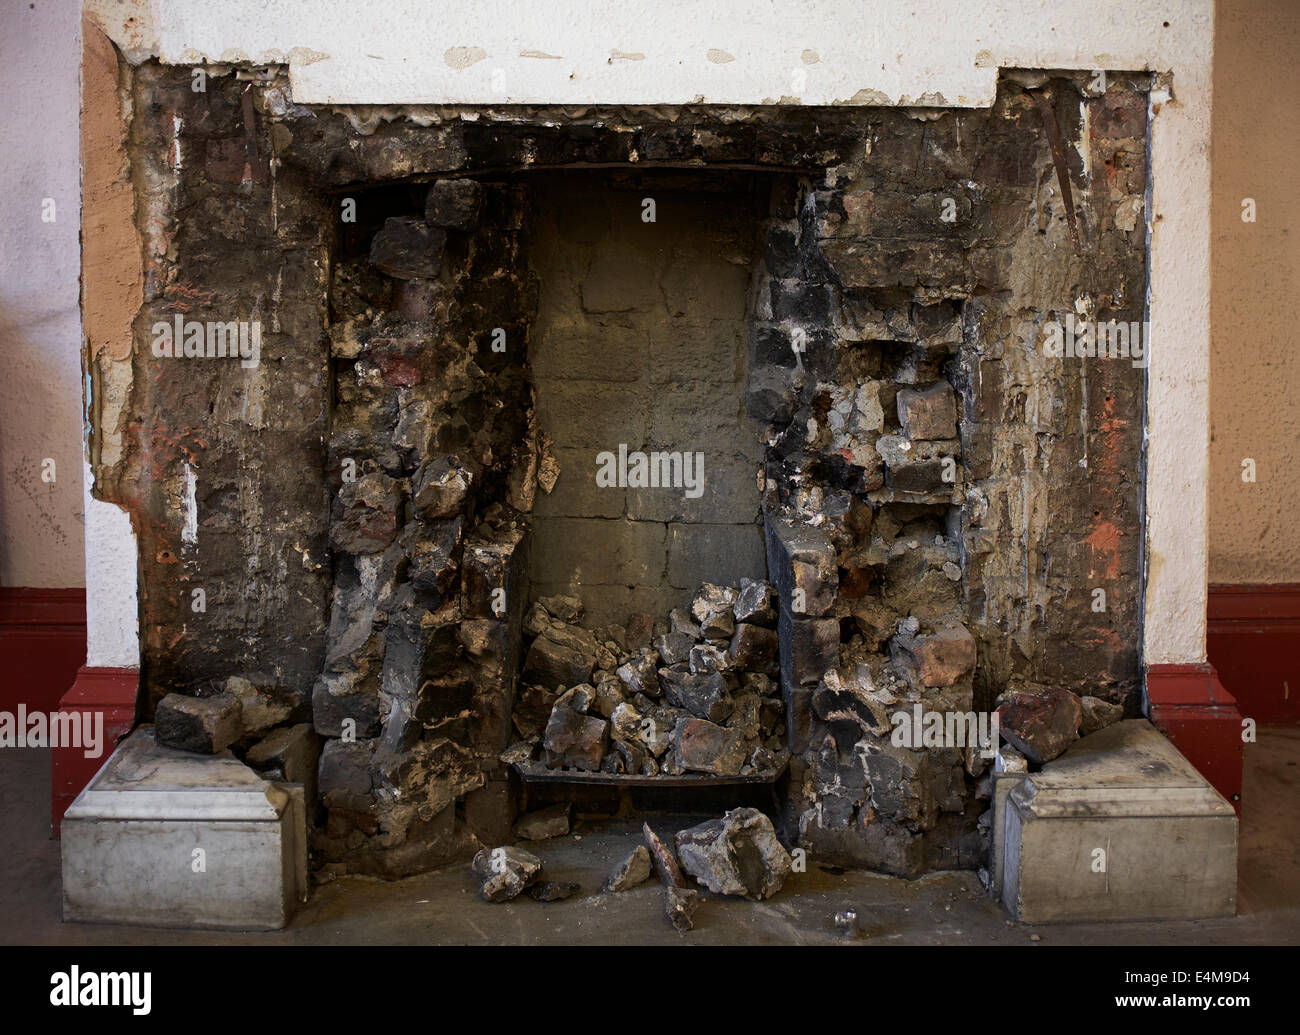 A fireplace with the original fire surround removed - Stock Image